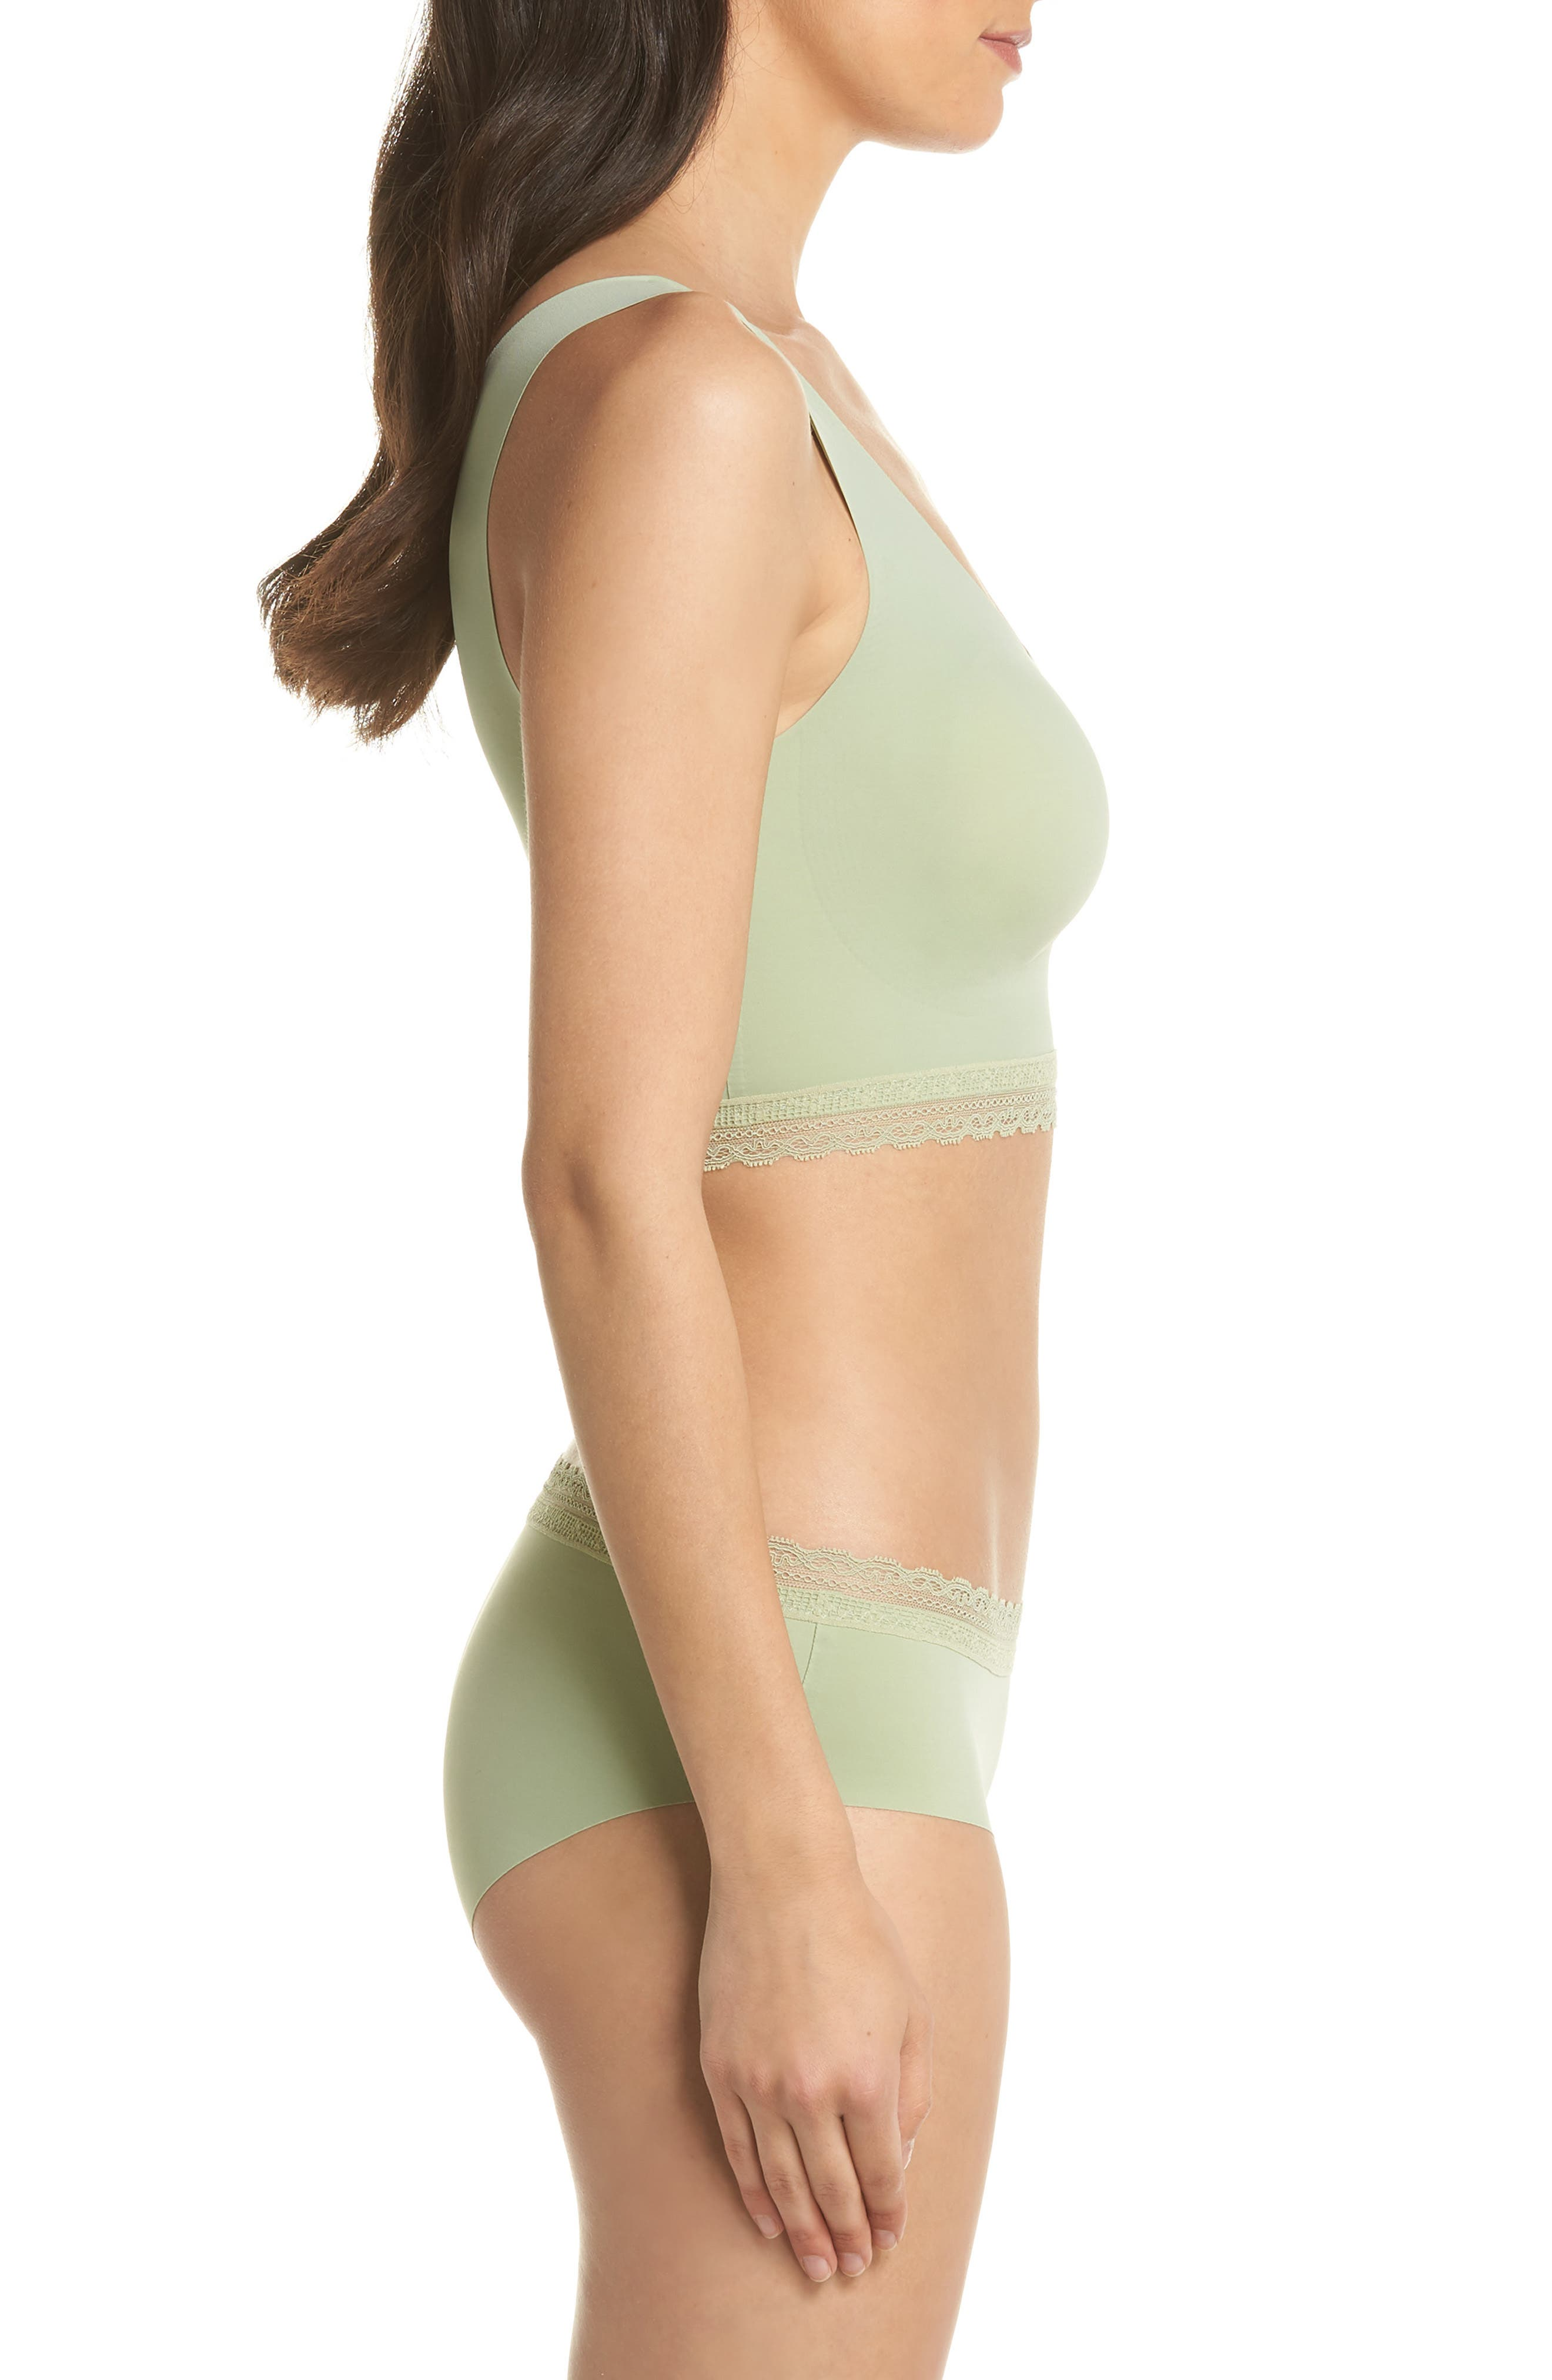 Almost Naked Lace Trim Hipster Briefs,                             Alternate thumbnail 6, color,                             Green Tea